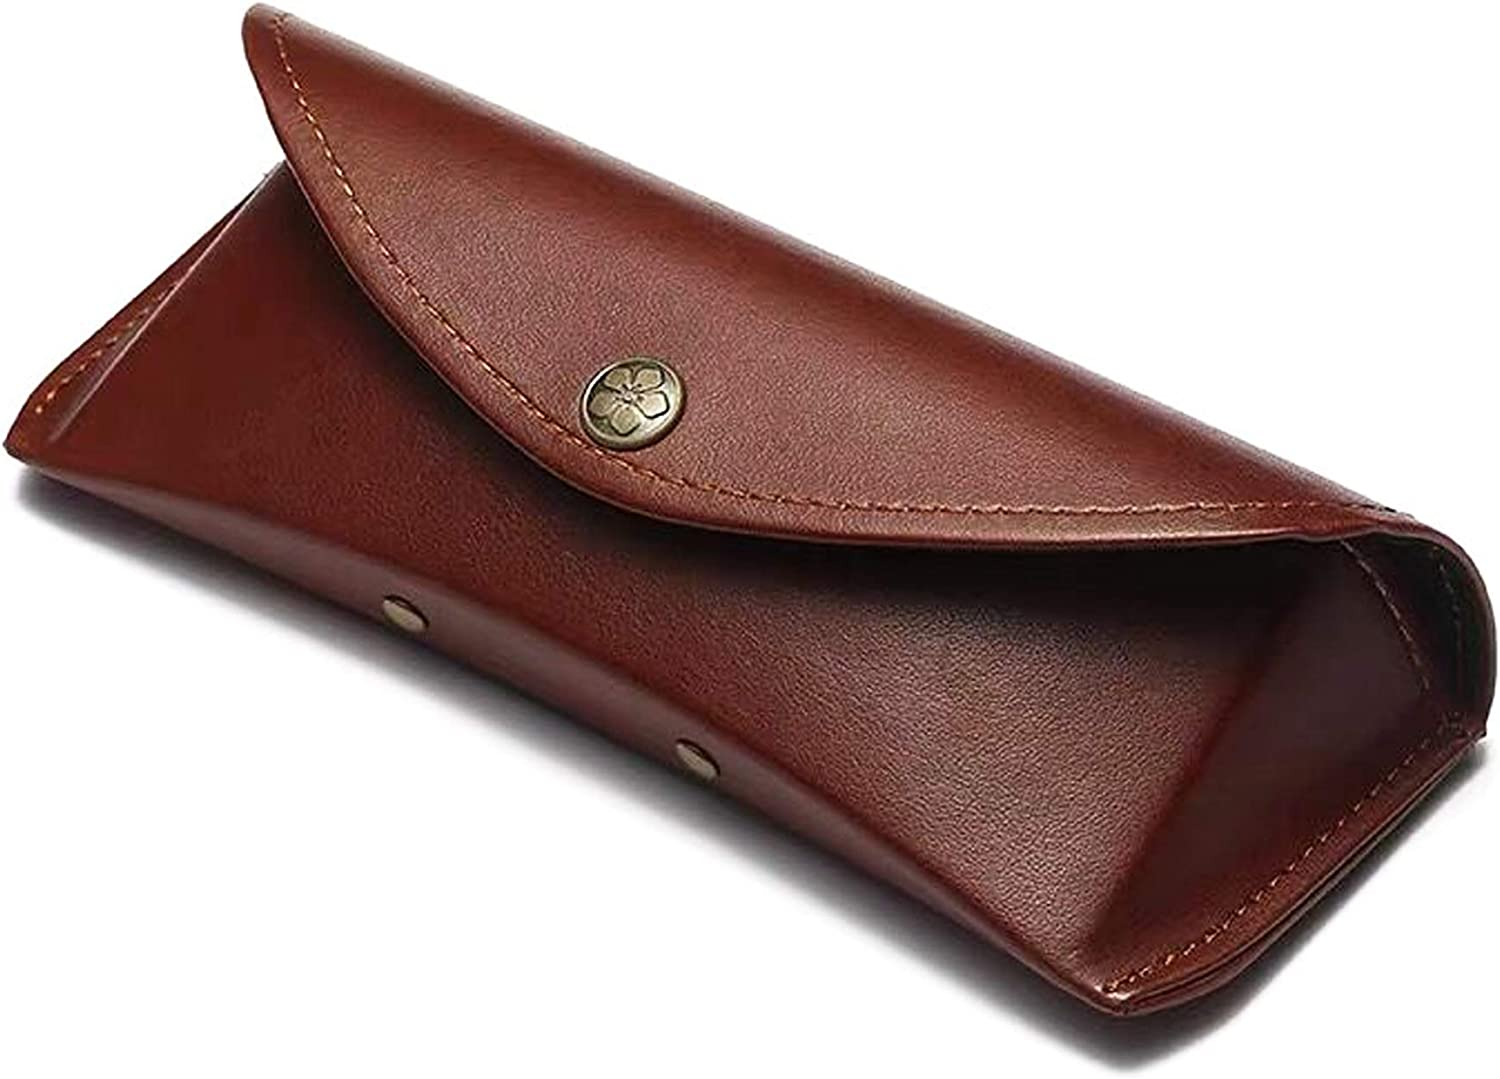 Longjet Glasses Case Leather Eye Glass Box with Anticollision Protective Holder for Eyeglass and Sunglasses